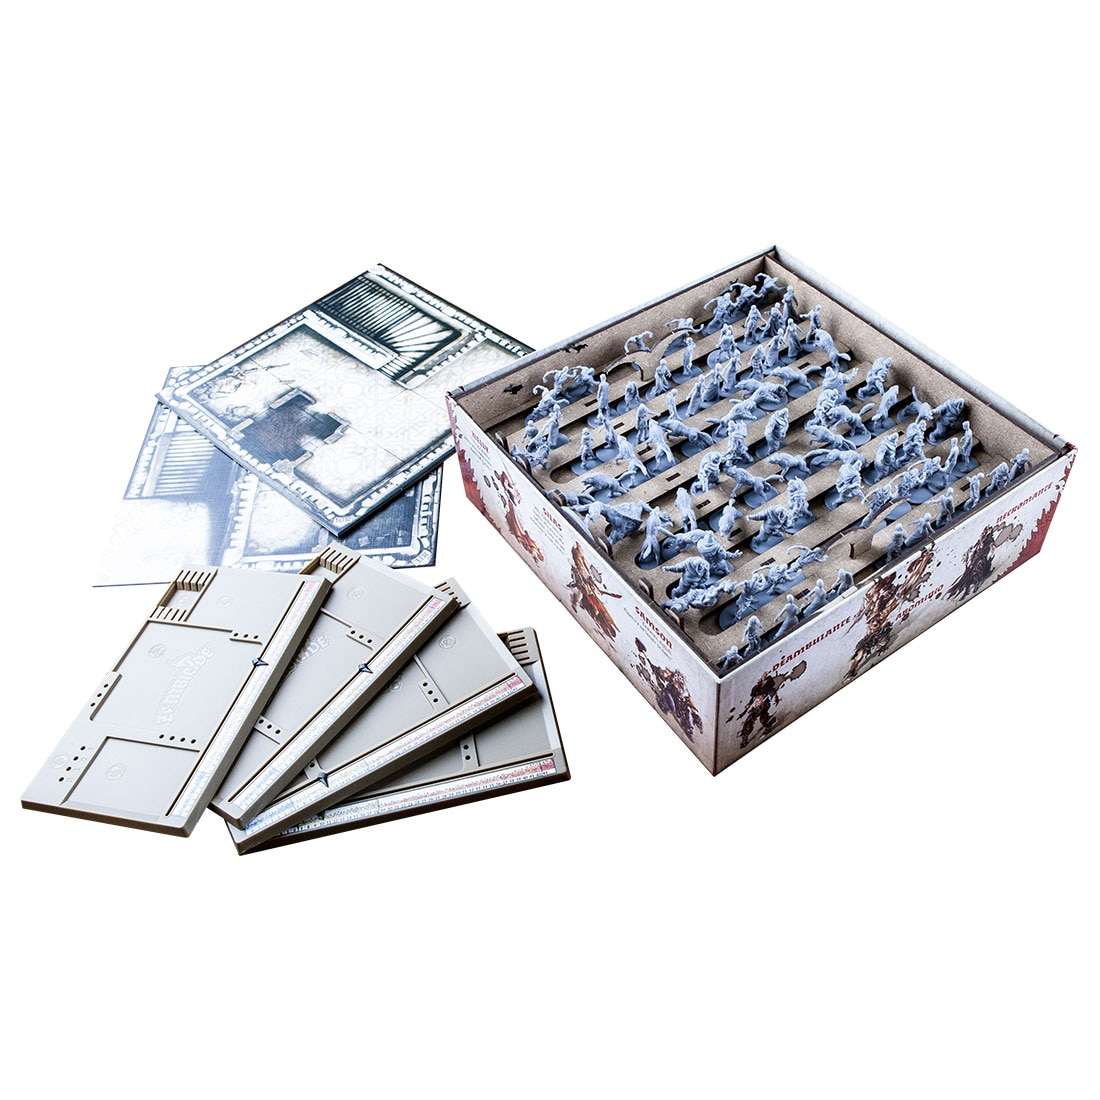 Zombicide Black Plague (base game or with Wulfsburg expansion) Organizer Insert - 2